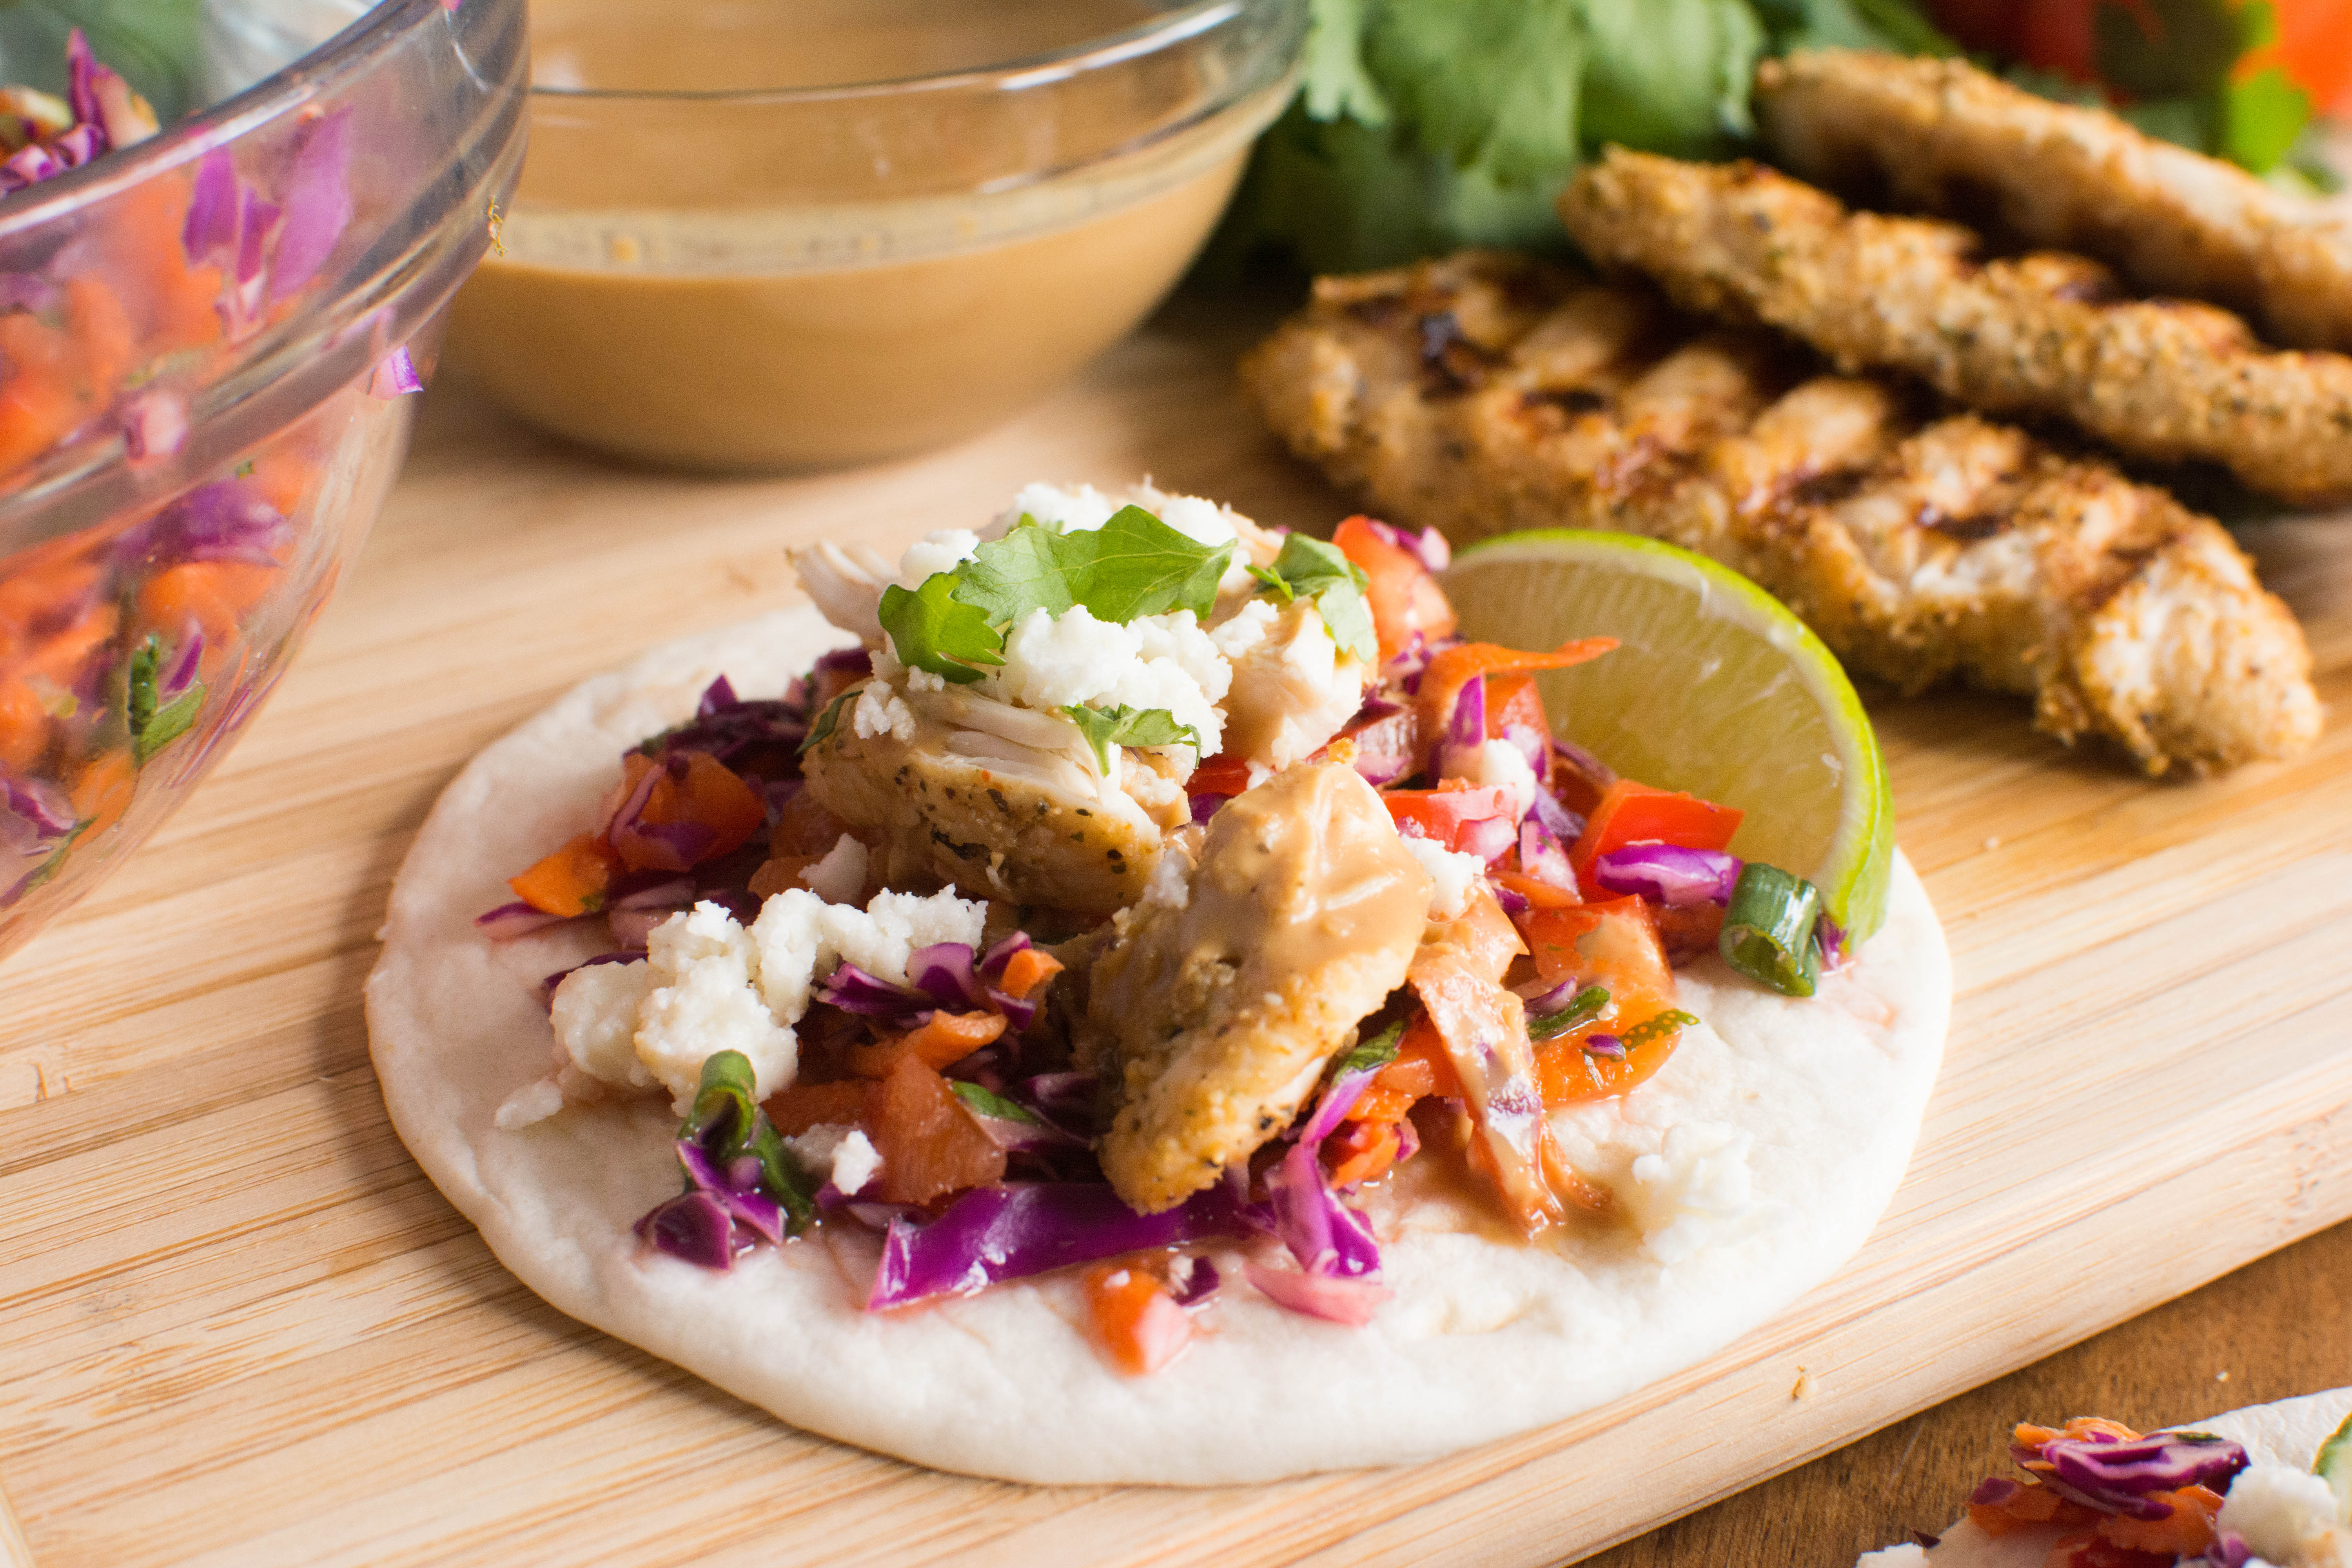 Grilled Chicken Street Tacos with Spicy Peanut Sauce